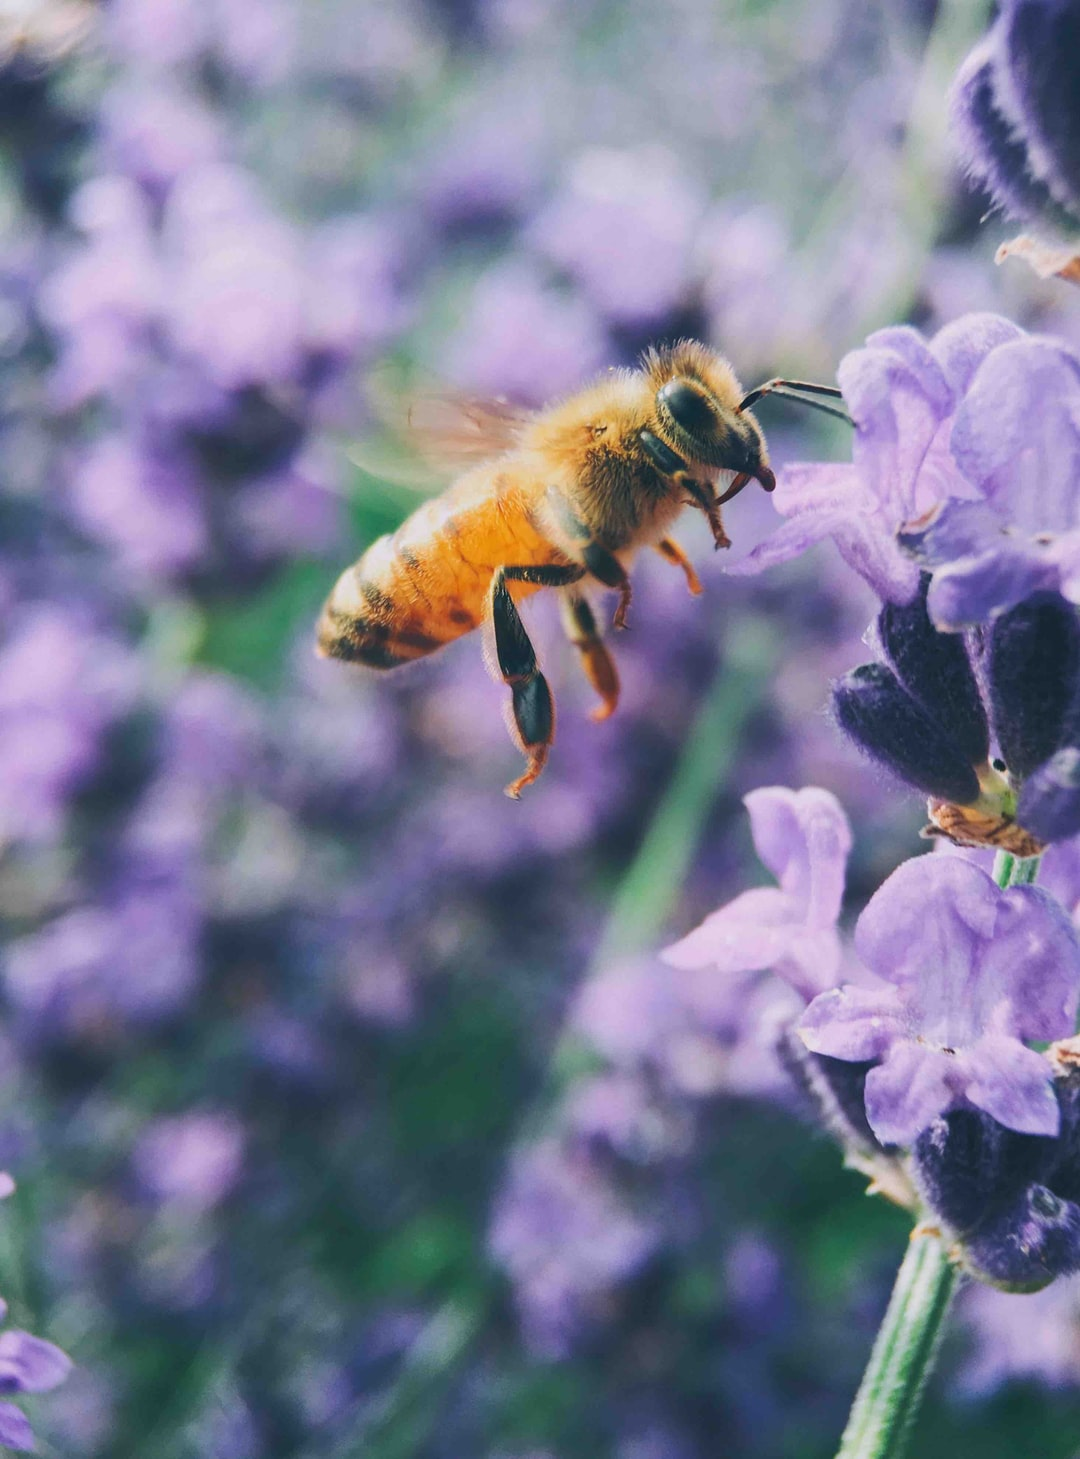 """One of my personal challenges has been to capture a bee in flight with an iPhone and olloclip lens attachment. I remember mentioning it to someone and they said something like """"good luck with that"""", but I accomplished it! Here it is! Keep challenging yourself to go farther! It probably is possible!"""